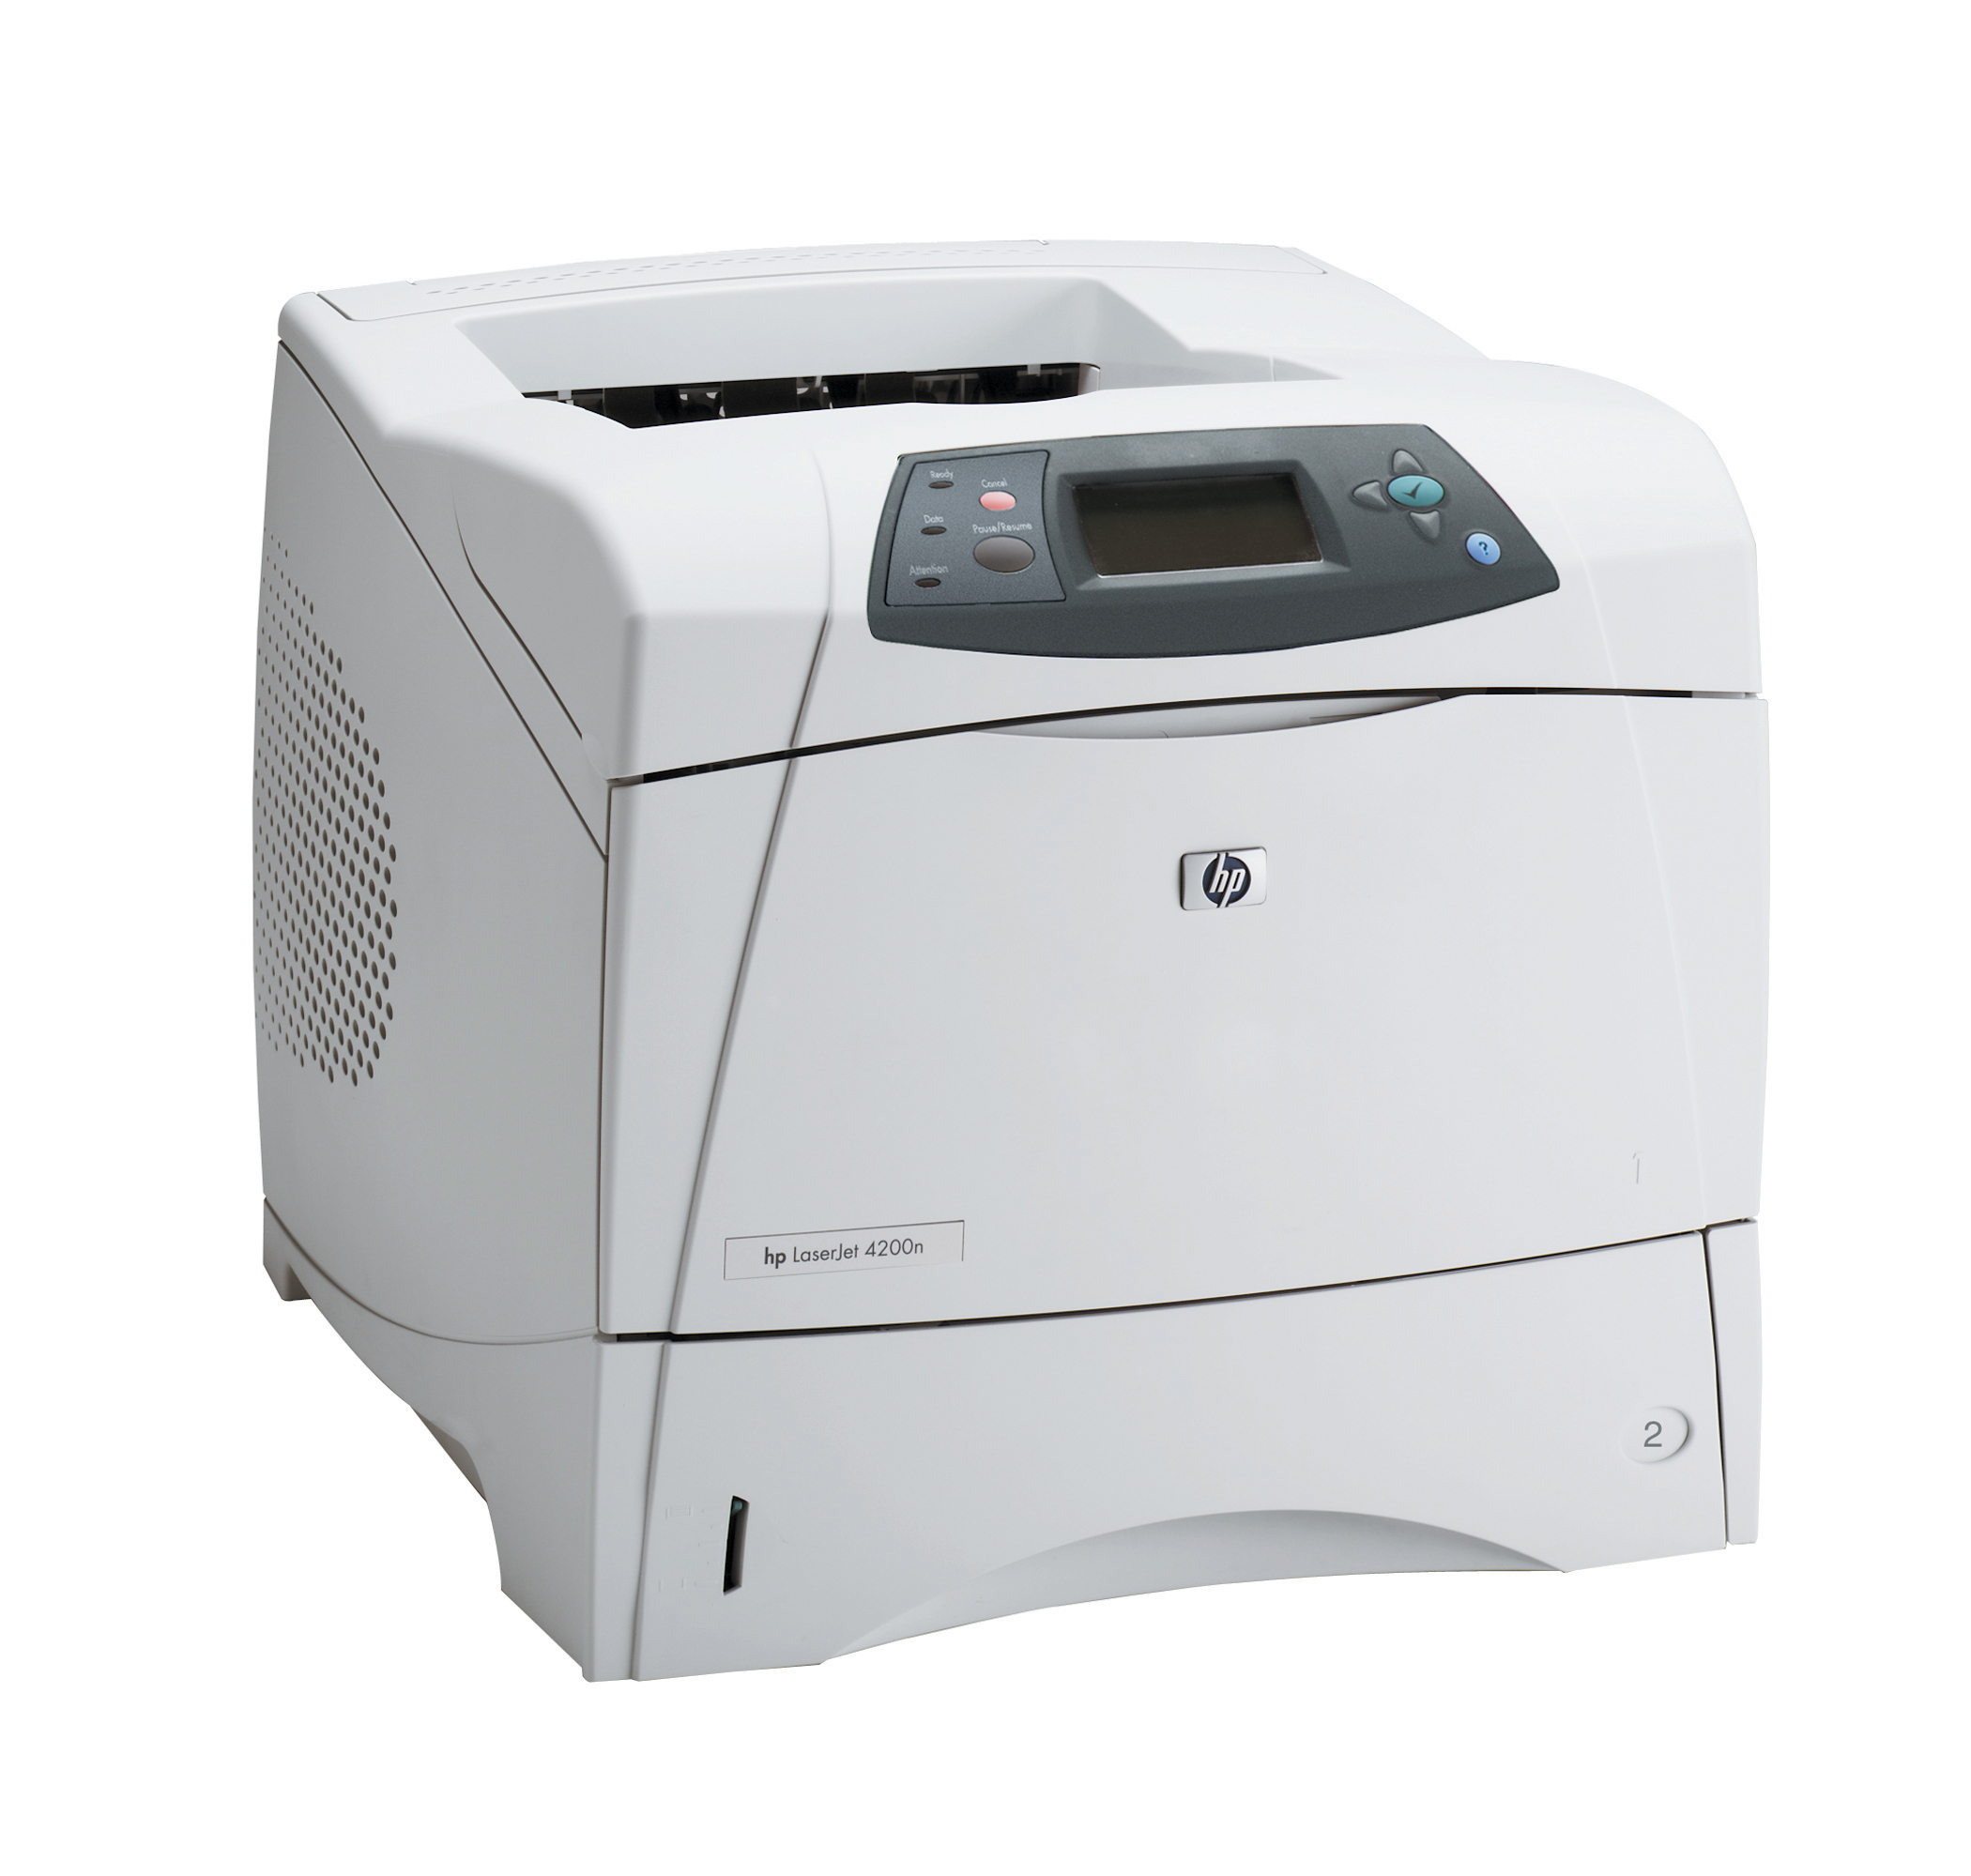 HP Refurbish LaserJet 4200N Laser Printer (Q2426A) - Seller Refurb